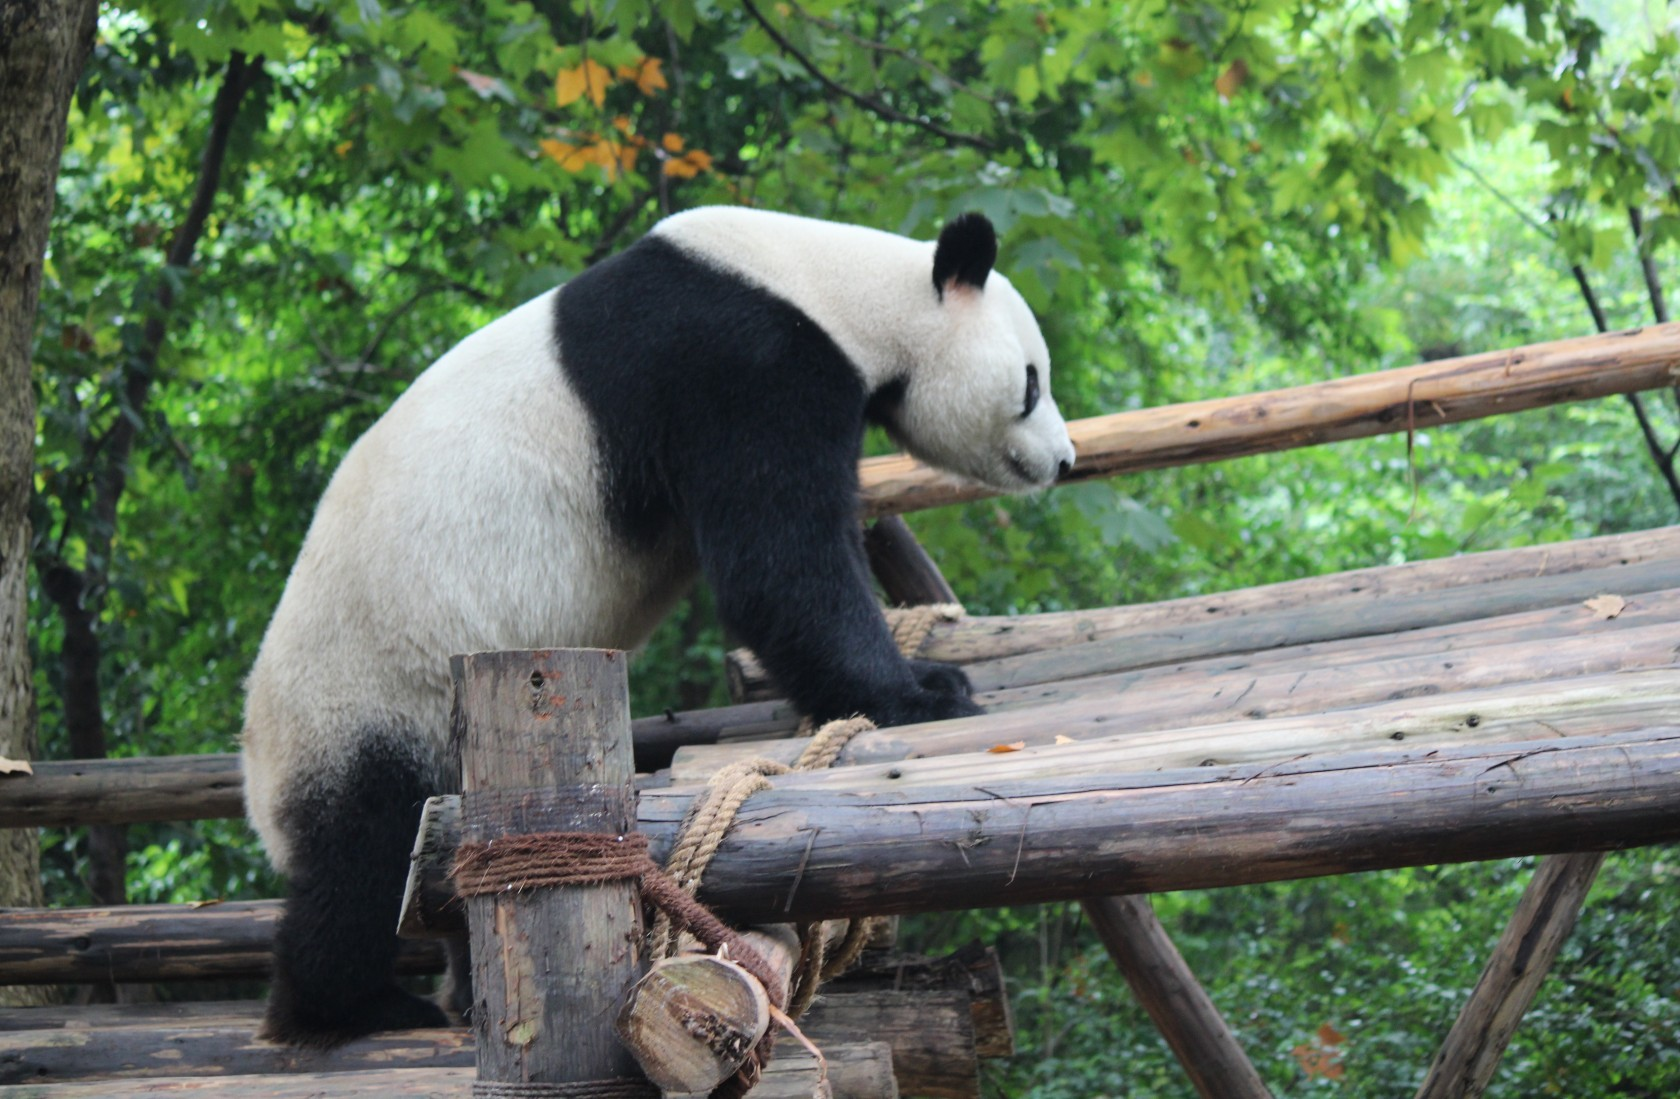 Chengdu - Research Base of Giant Panda Breeding I